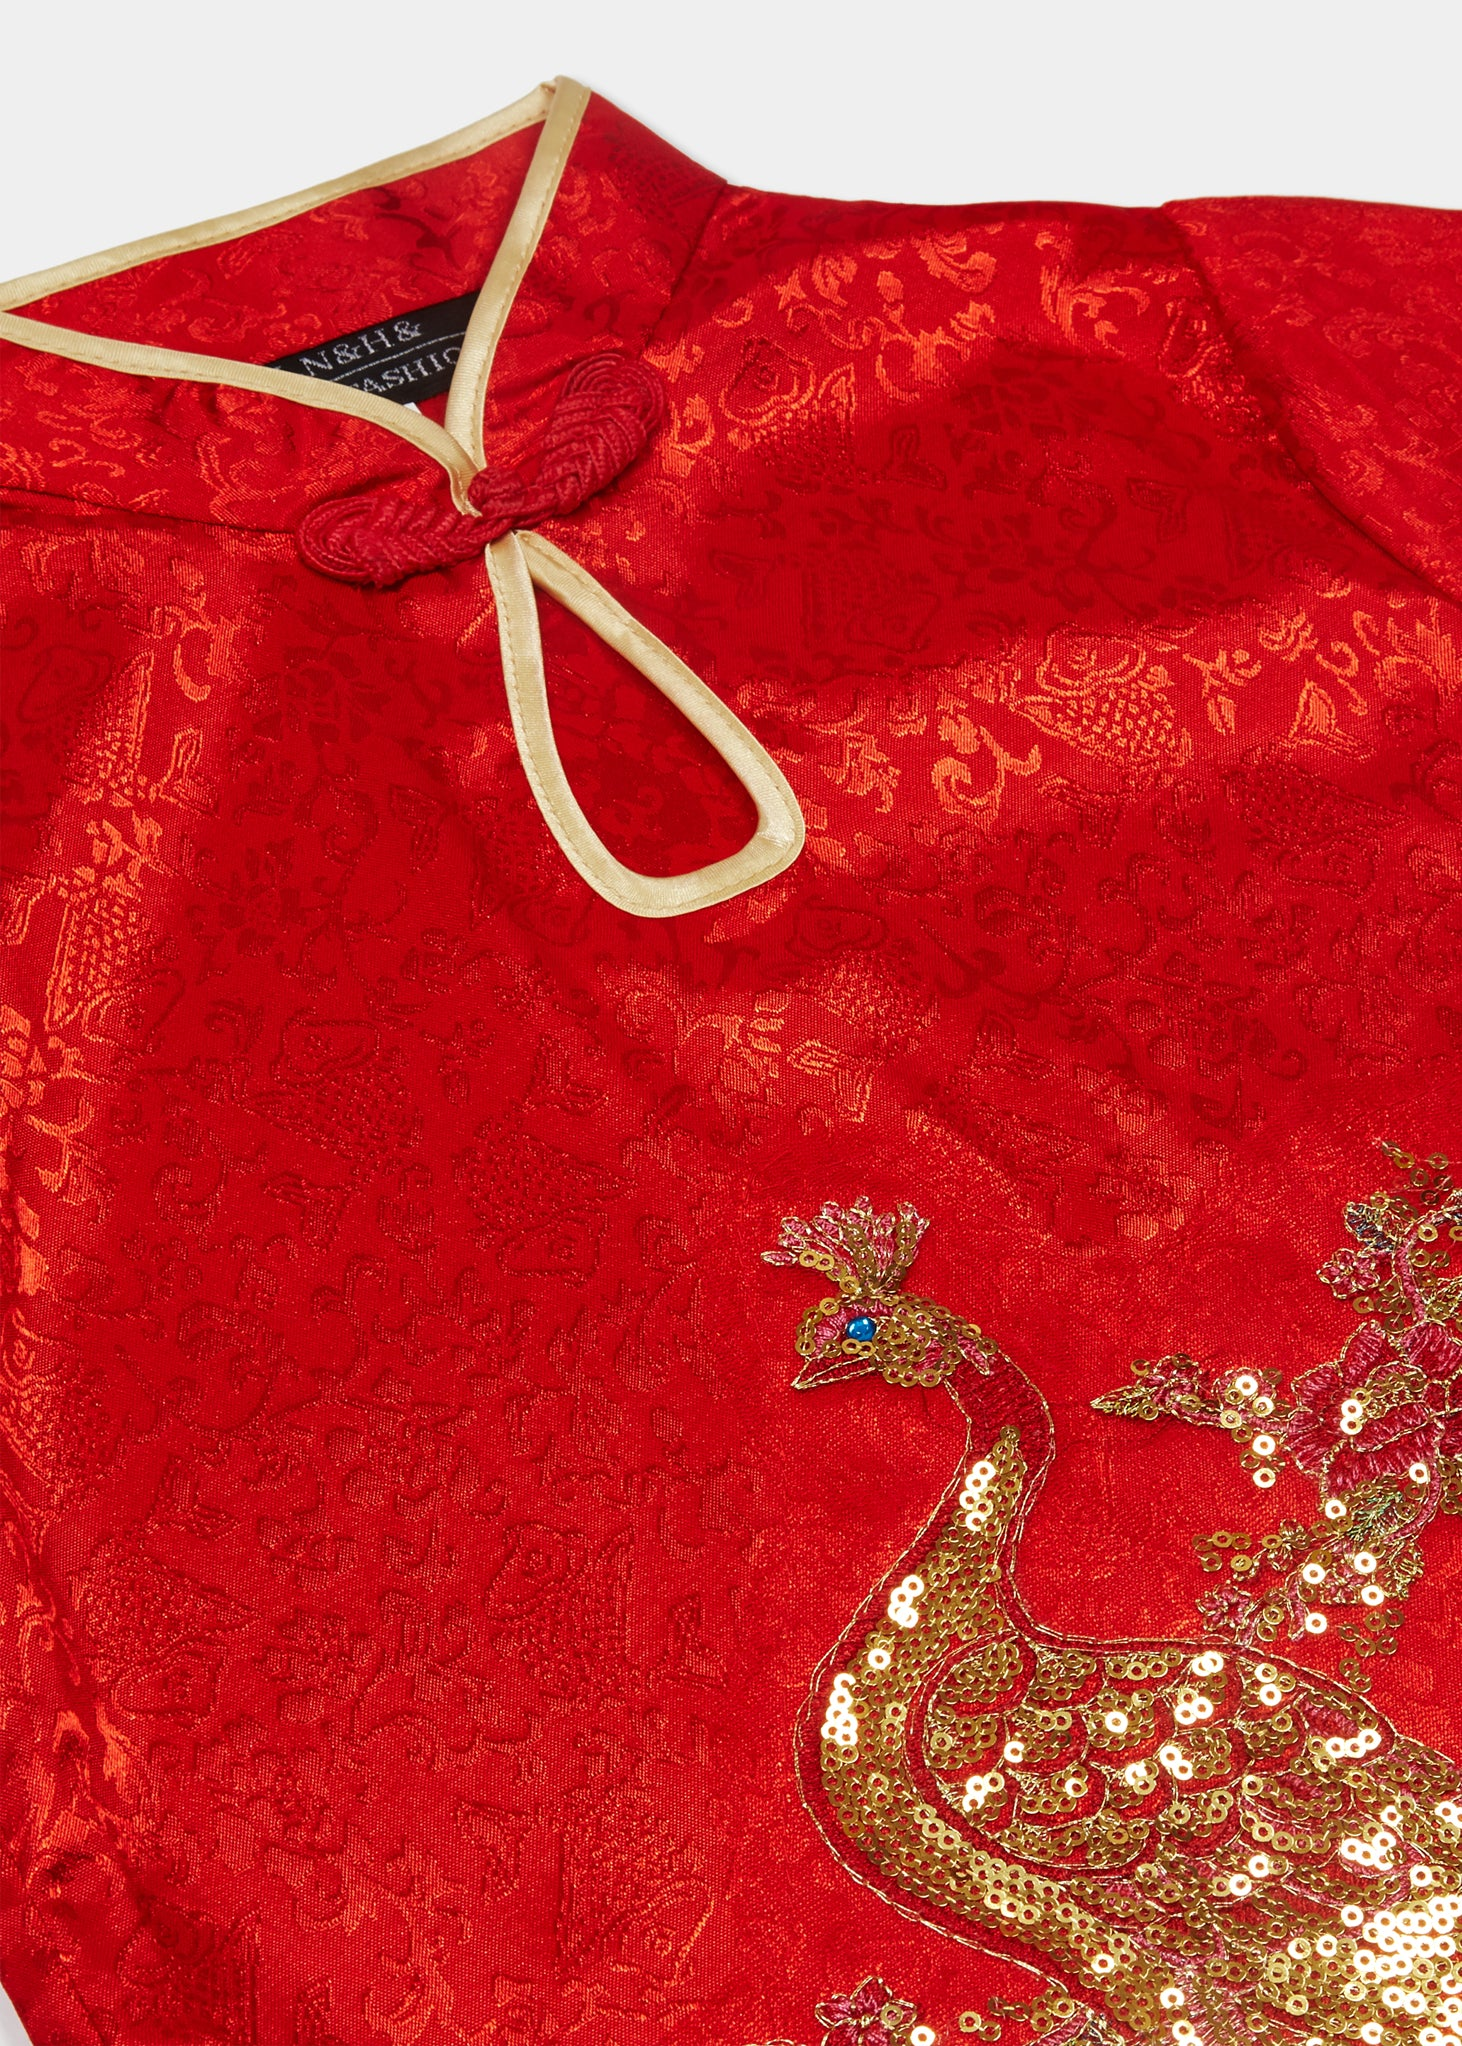 Cap sleeves, discreet side zip, mandarin collar with gold bound keyhole opening and flower and knot frog fastening. Side splits with gold binding. Large peacock applique embroidery with gold thread and sequins